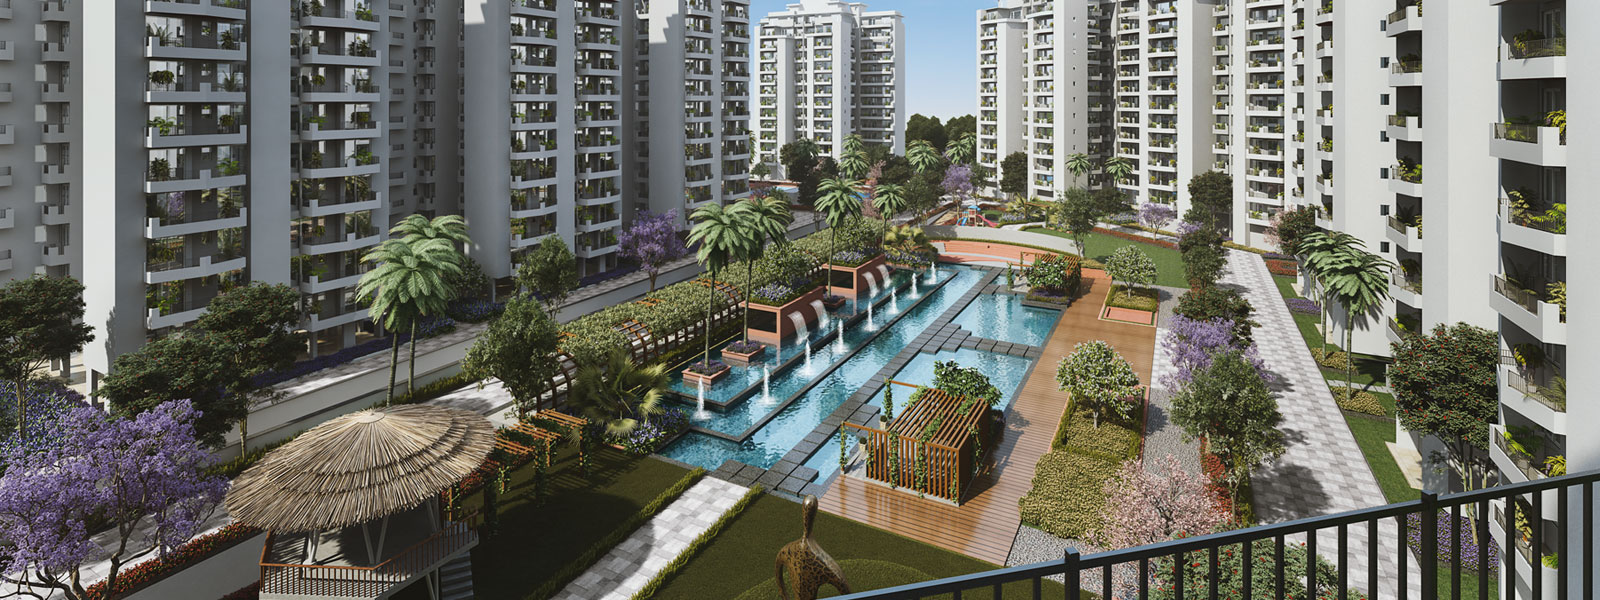 Anant Raj Maceo Residential Flats